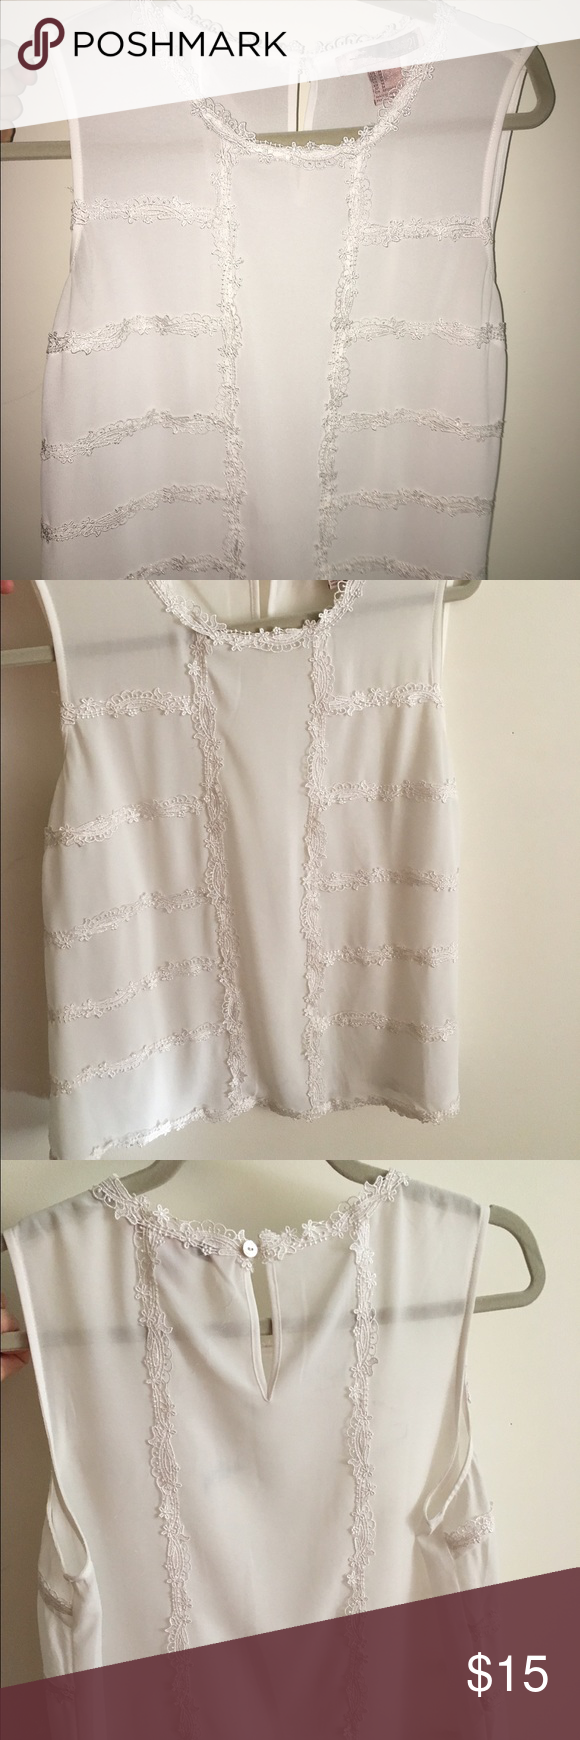 White Blouse with detailed trim Worn once. Beautiful sheer Blouse! Perfect for work or a fun outing with friends! Can be dressed up or dressed down. Extremely comfortable! Forever 21 Tops Blouses